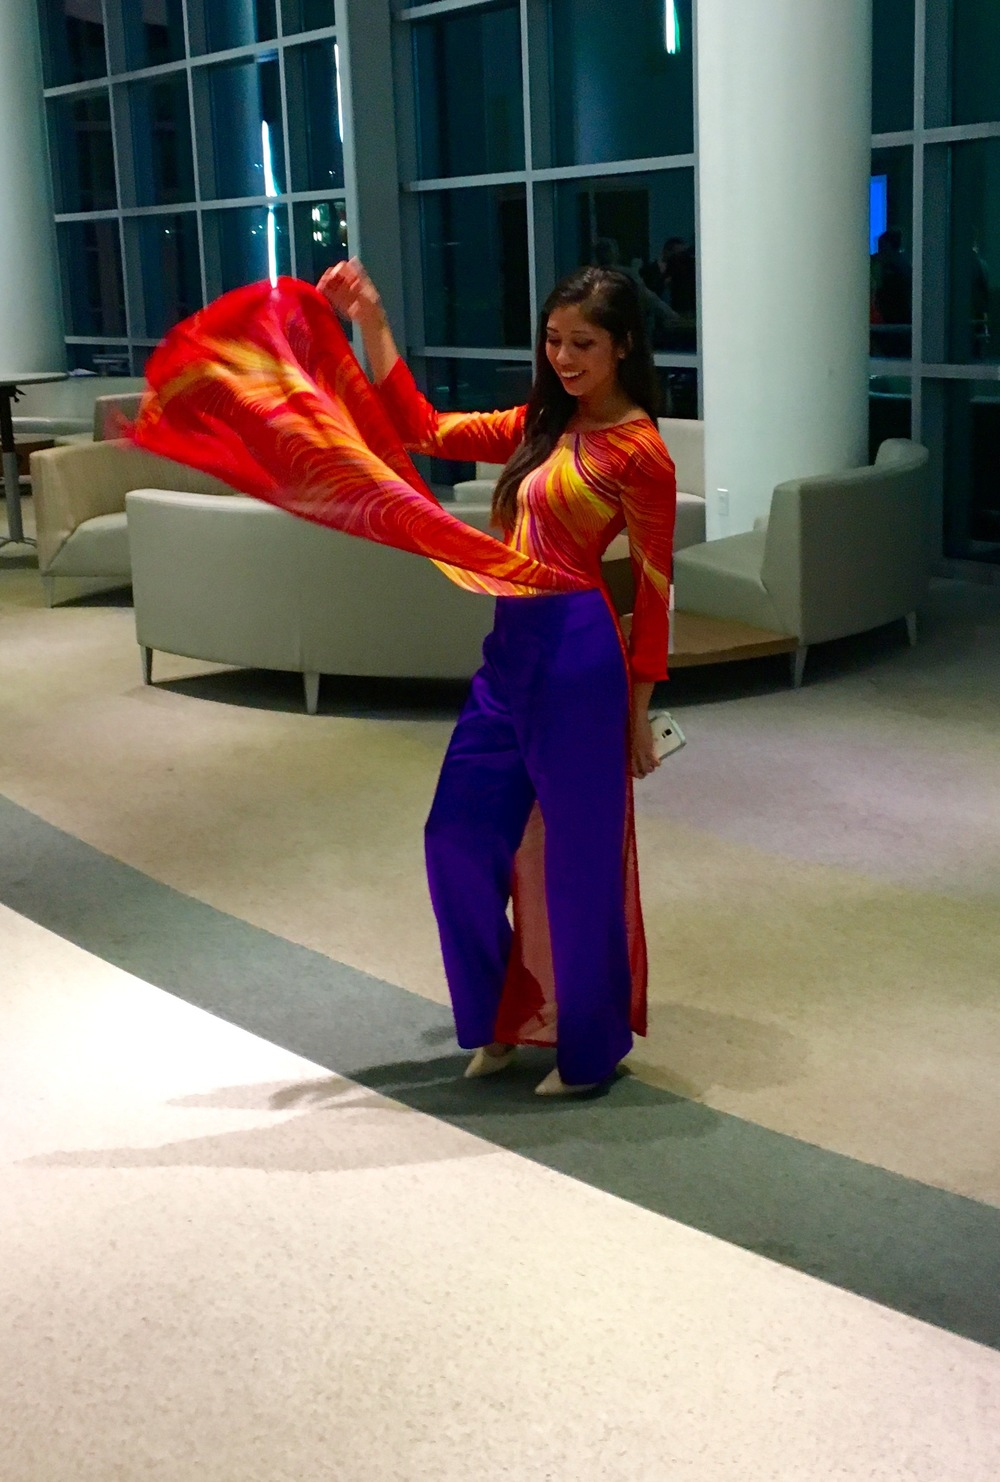 Linda Nguyen, MD's ensemble for the Bascom Palmer graduation is just magical. This little fashionista designed this herself in Vietnam and she looks absolutely amazing.